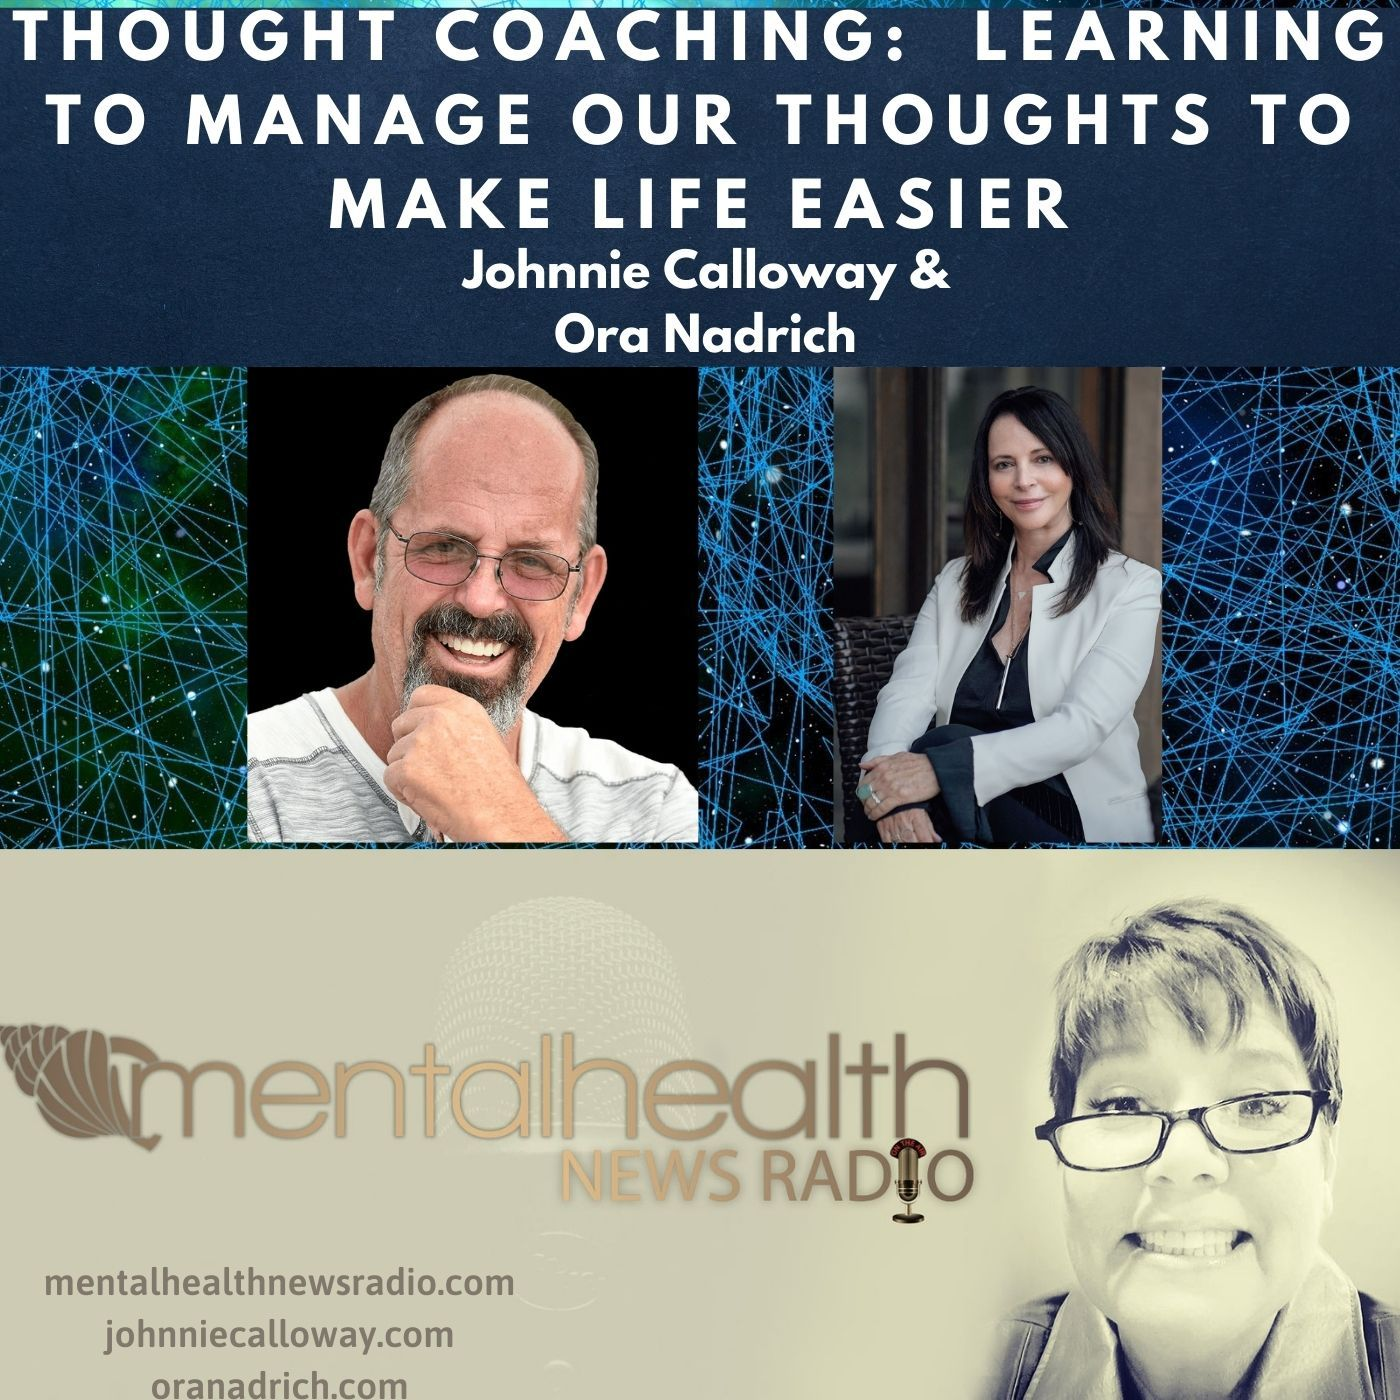 Mental Health News Radio - Thought Coaching: Learning to Manage our Thoughts To Make Life Easier